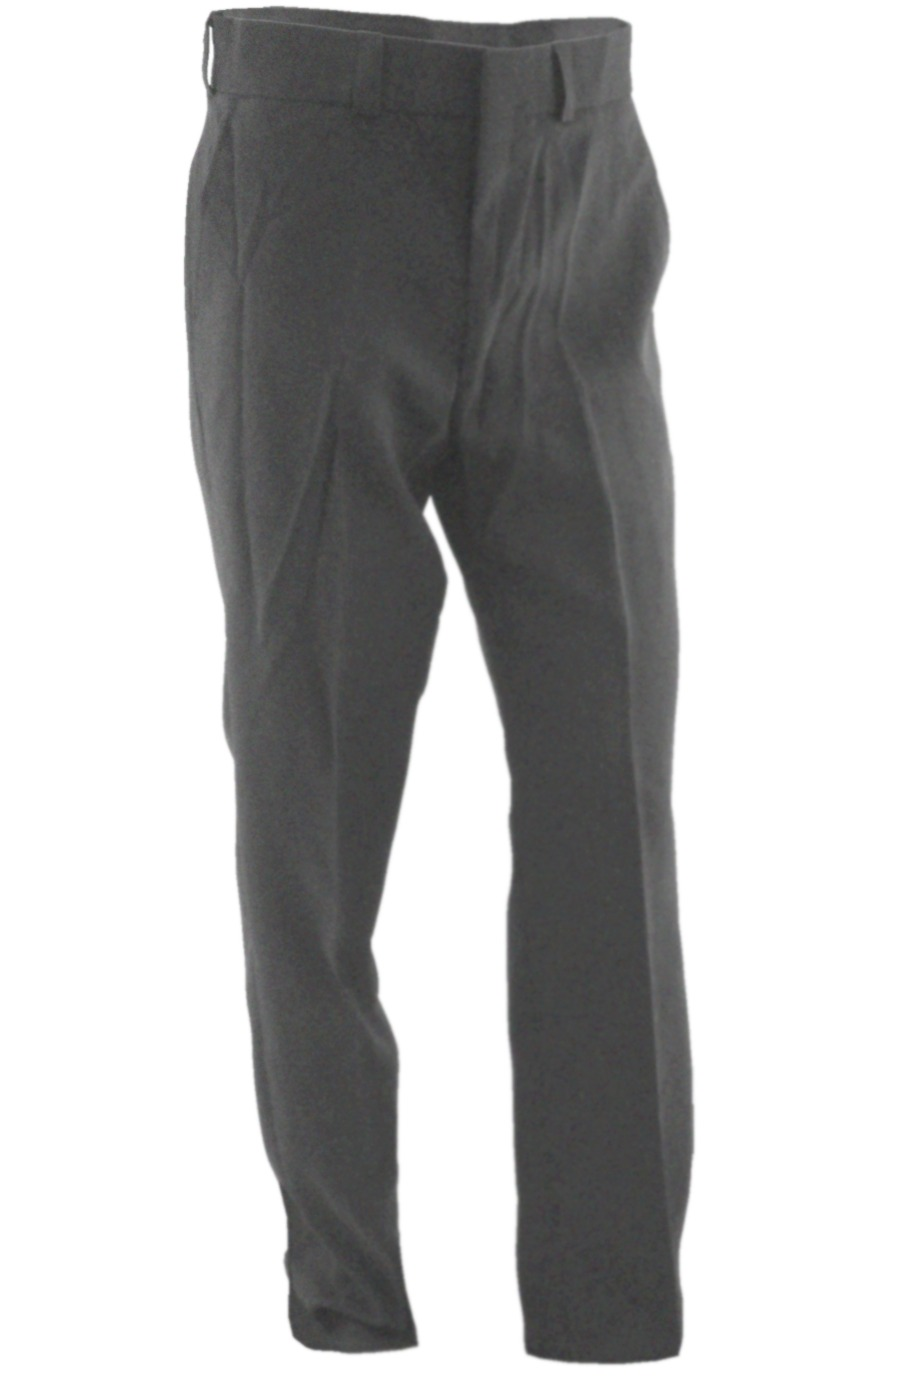 Edwards Garment 2595 - Men's Security Pant